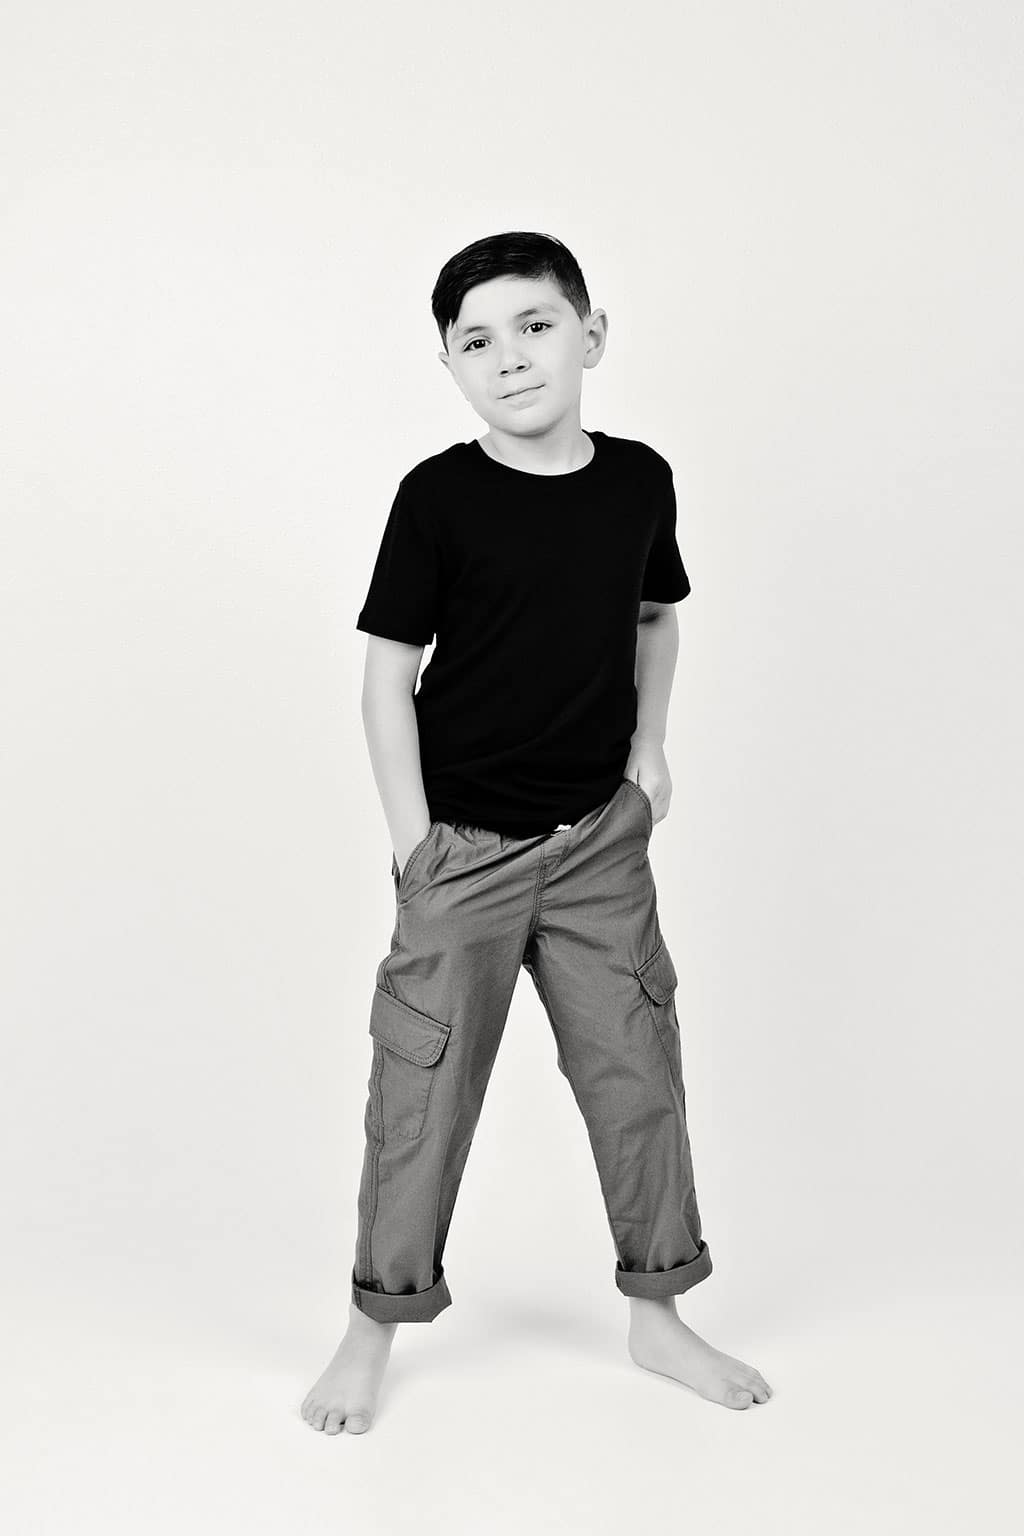 little brother strikes a pose in private studio session